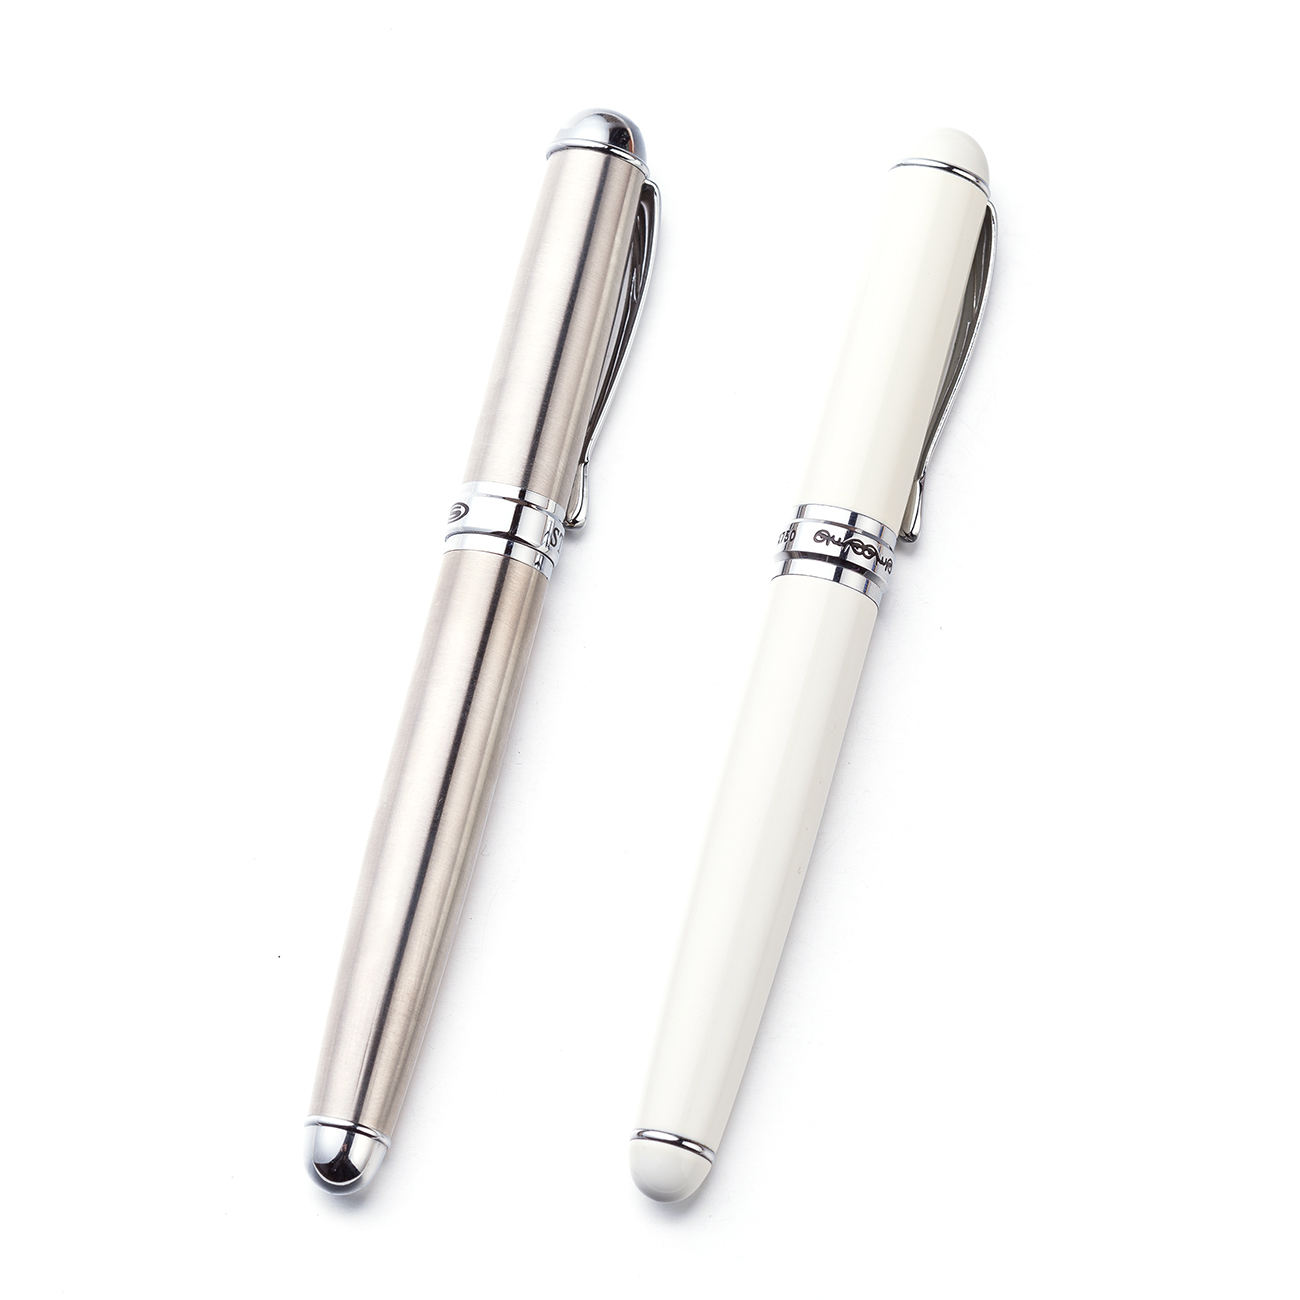 Stationery Wholesale Fat Style Calligraphy Heavy Roller Ball Pen With Medium Tip